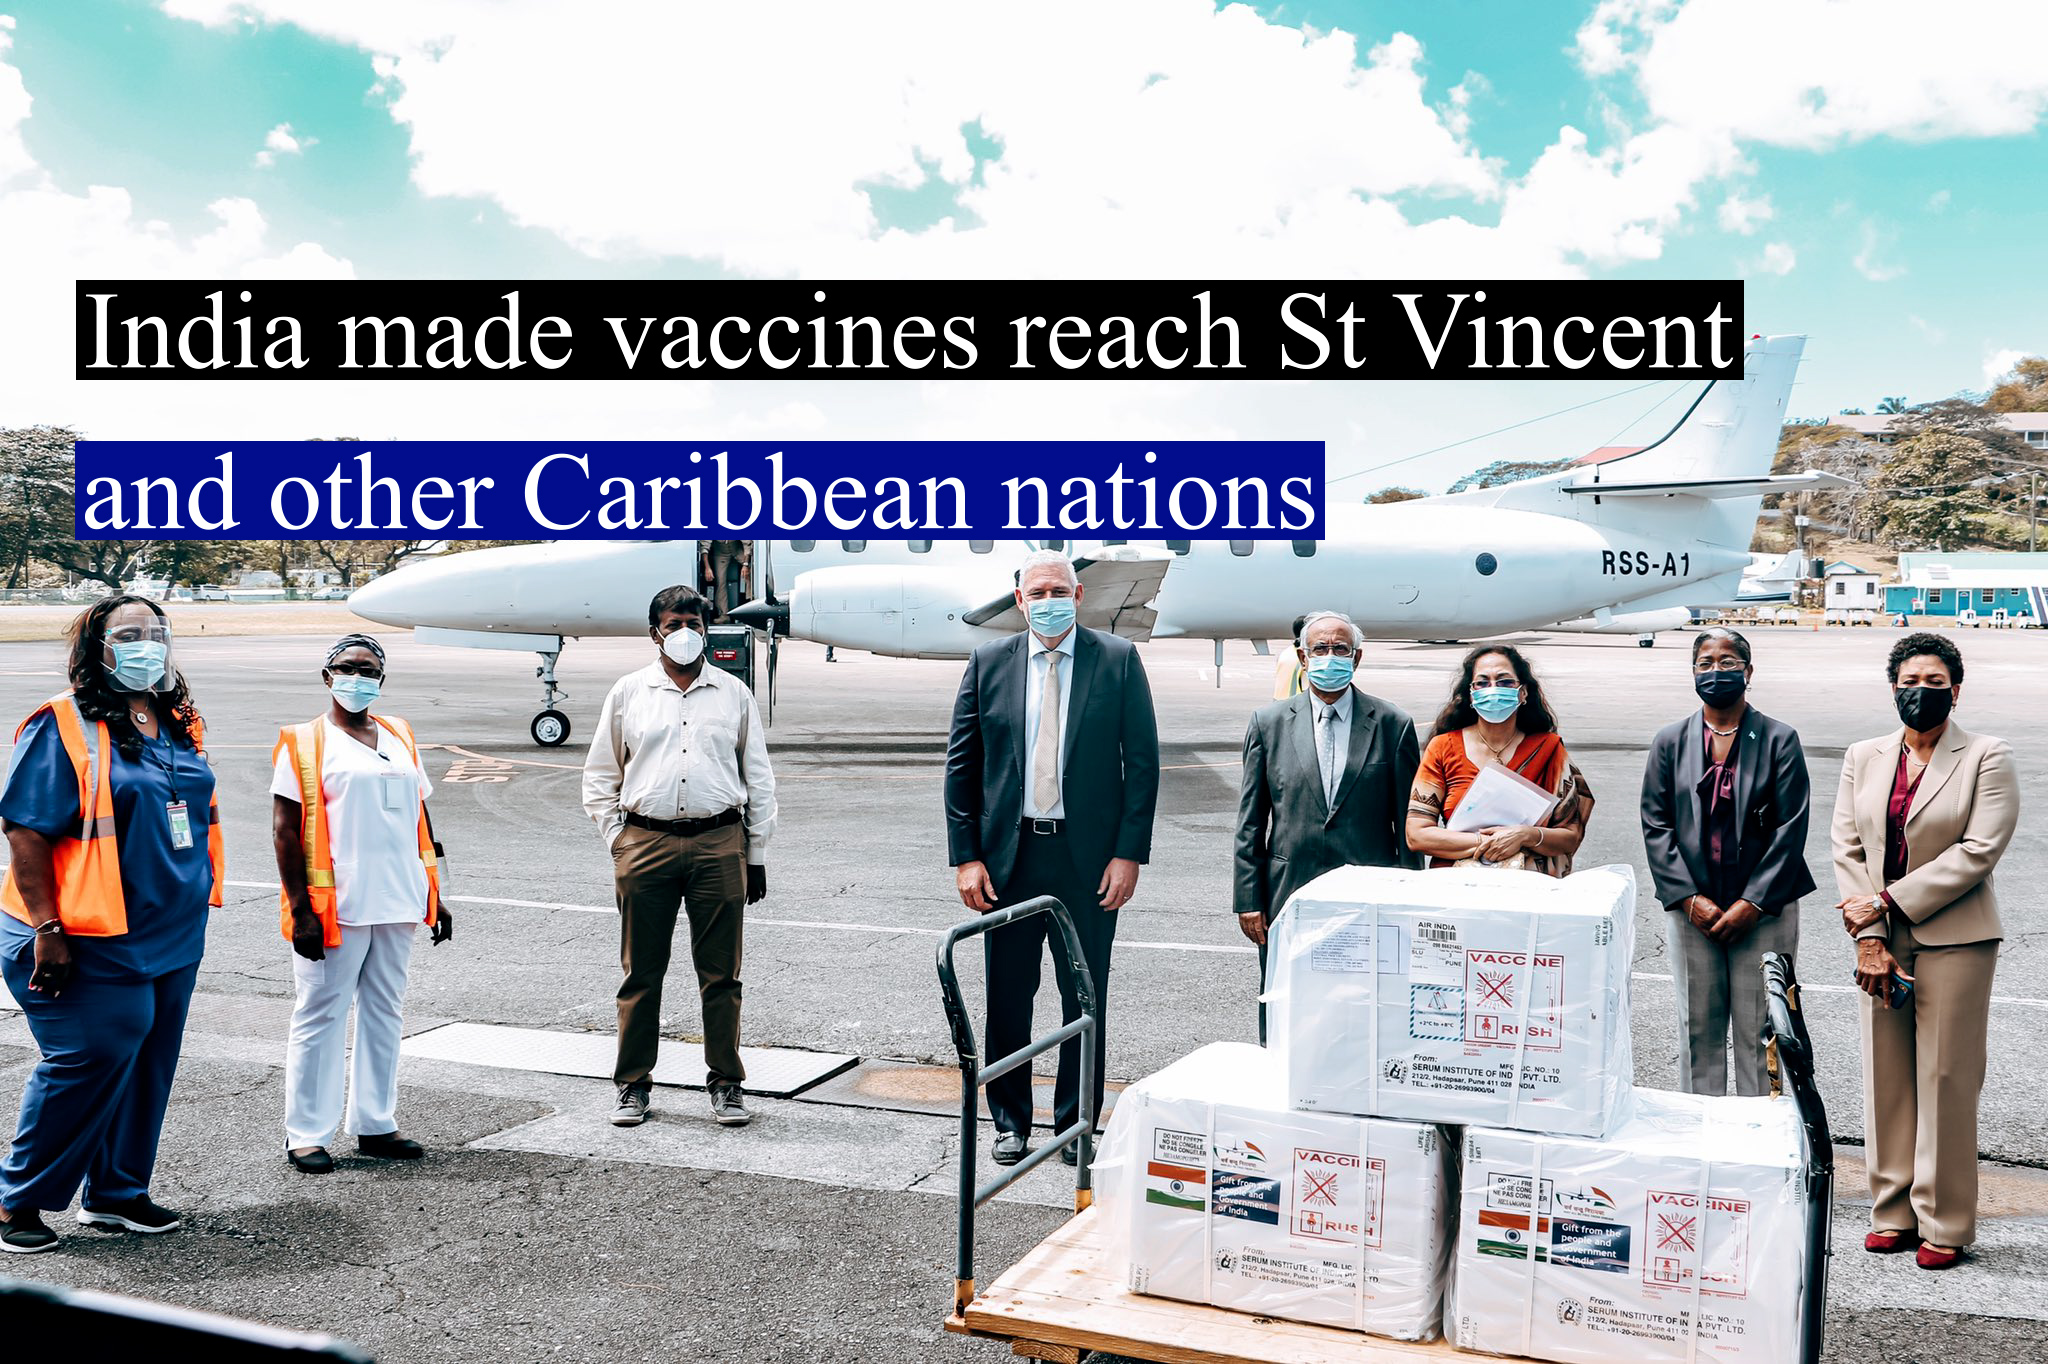 India made vaccines reach St Vincent and other Caribbean nations